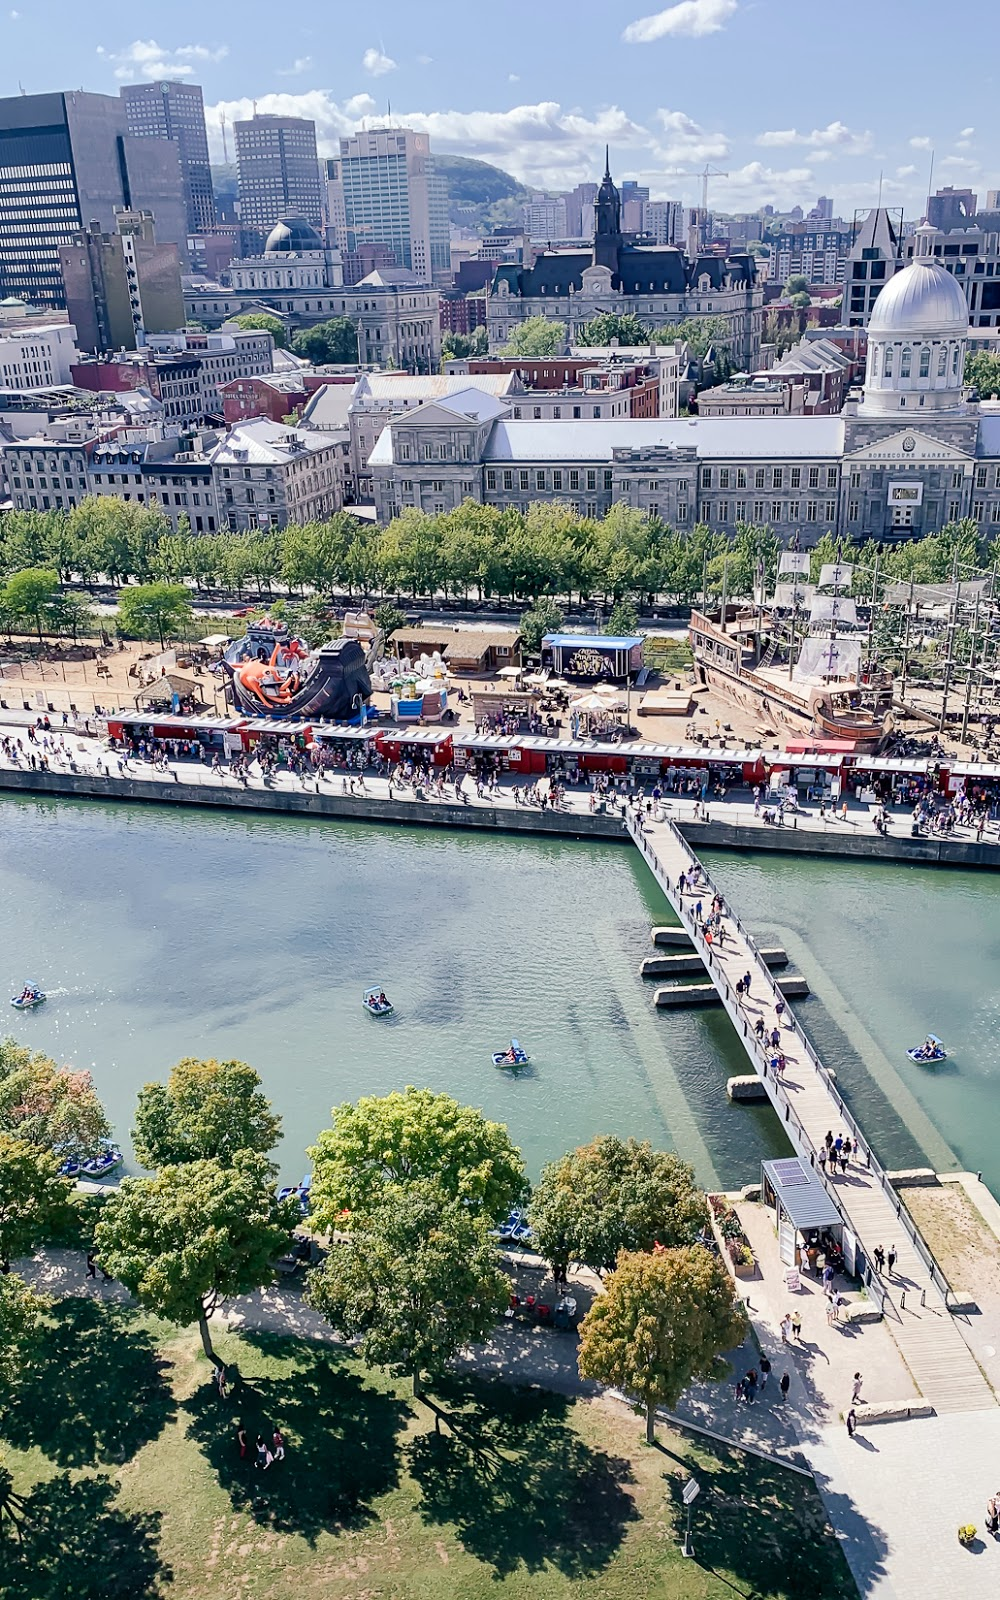 The Ferris Wheel Ride at Vieux (Old) Port Montreal: Things to Do in Montreal